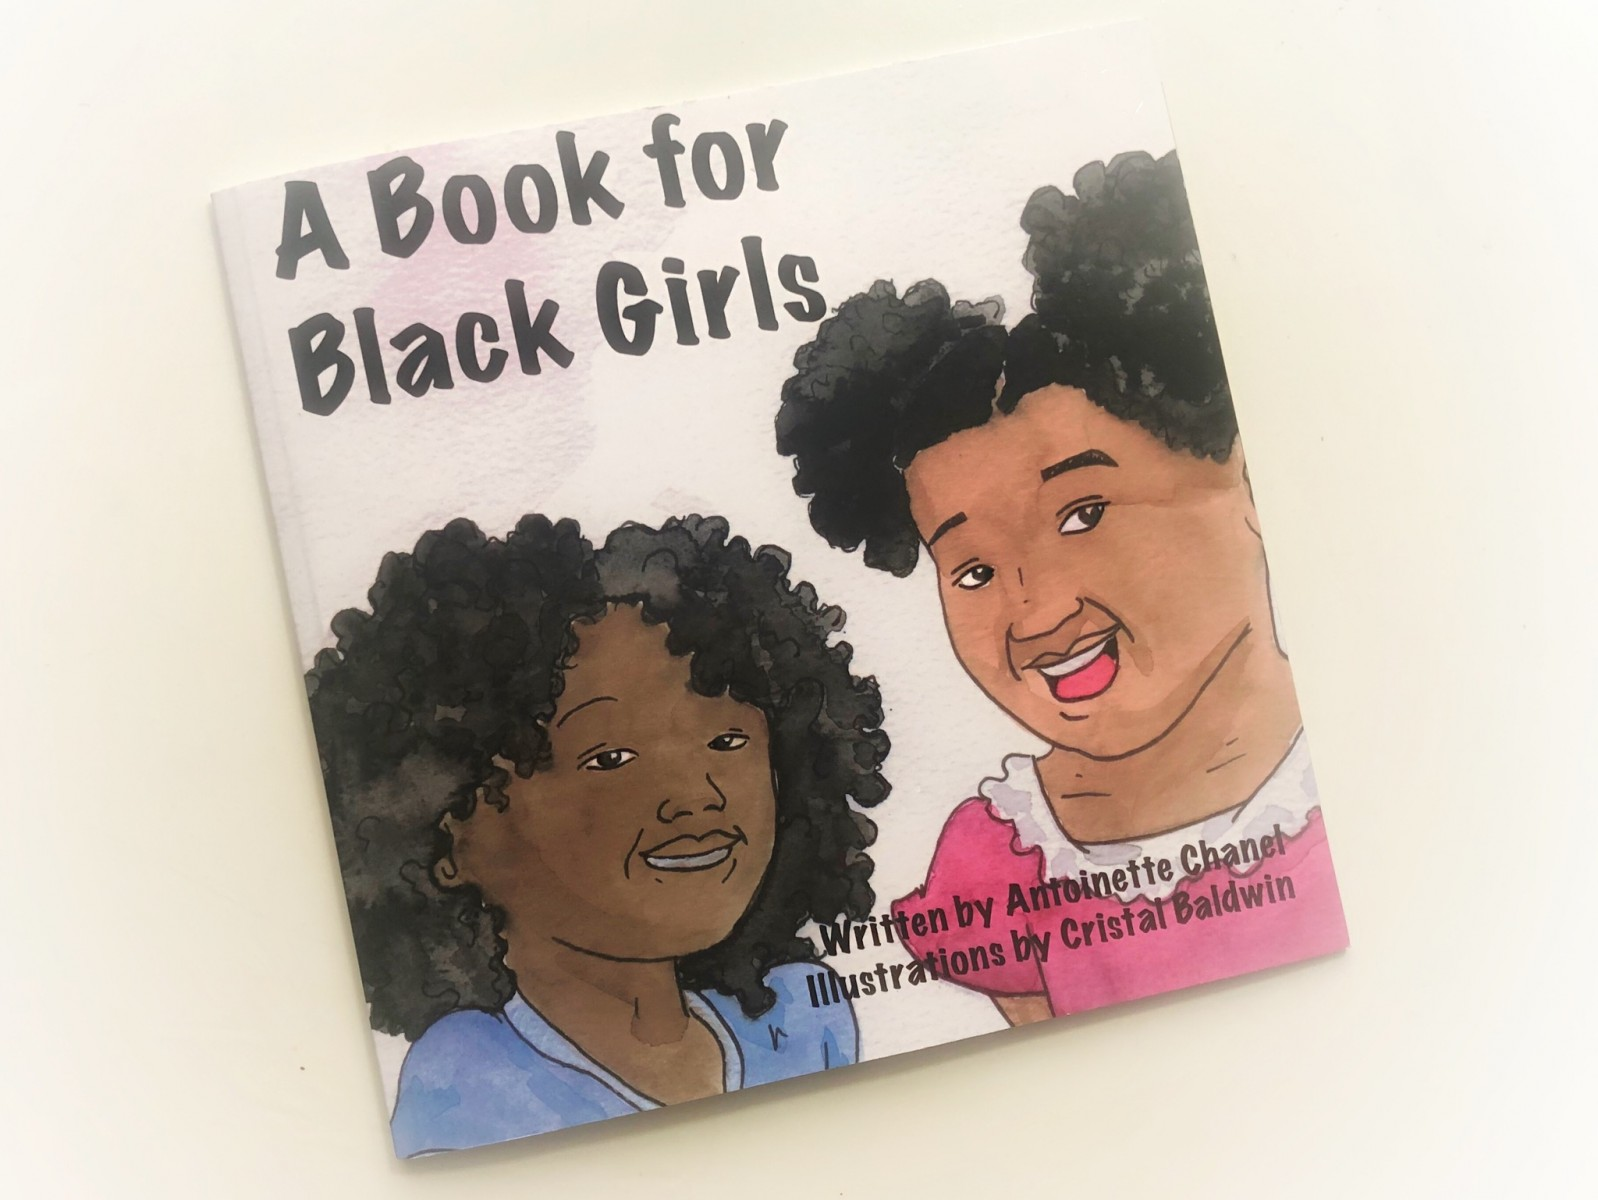 """A Book for Black Girls"" was written by alumna Antoinette Chanel."